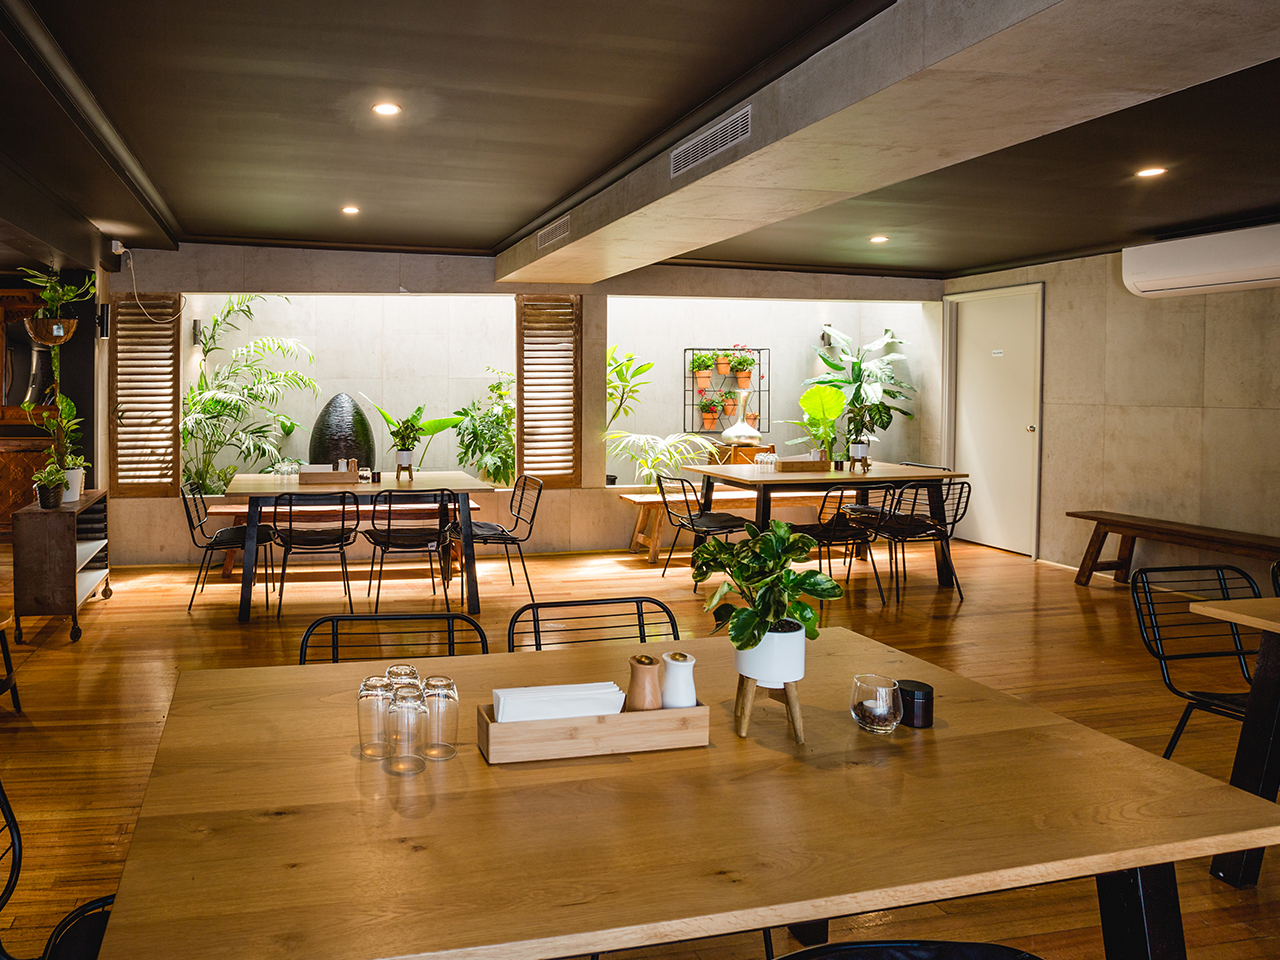 Wooden Tables With Chairs And Indoor Plants Inside The Function Room